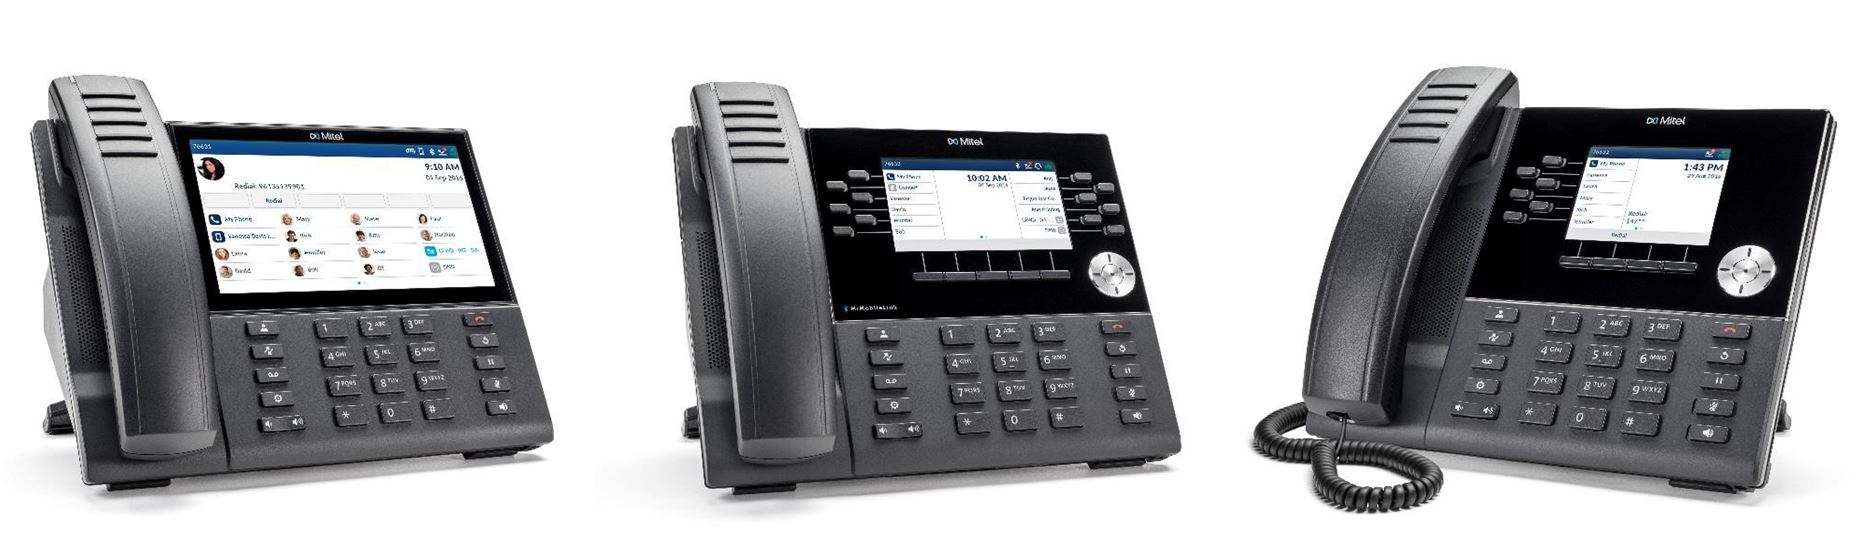 Cloud Phone System Phones - Pittsburgh PA